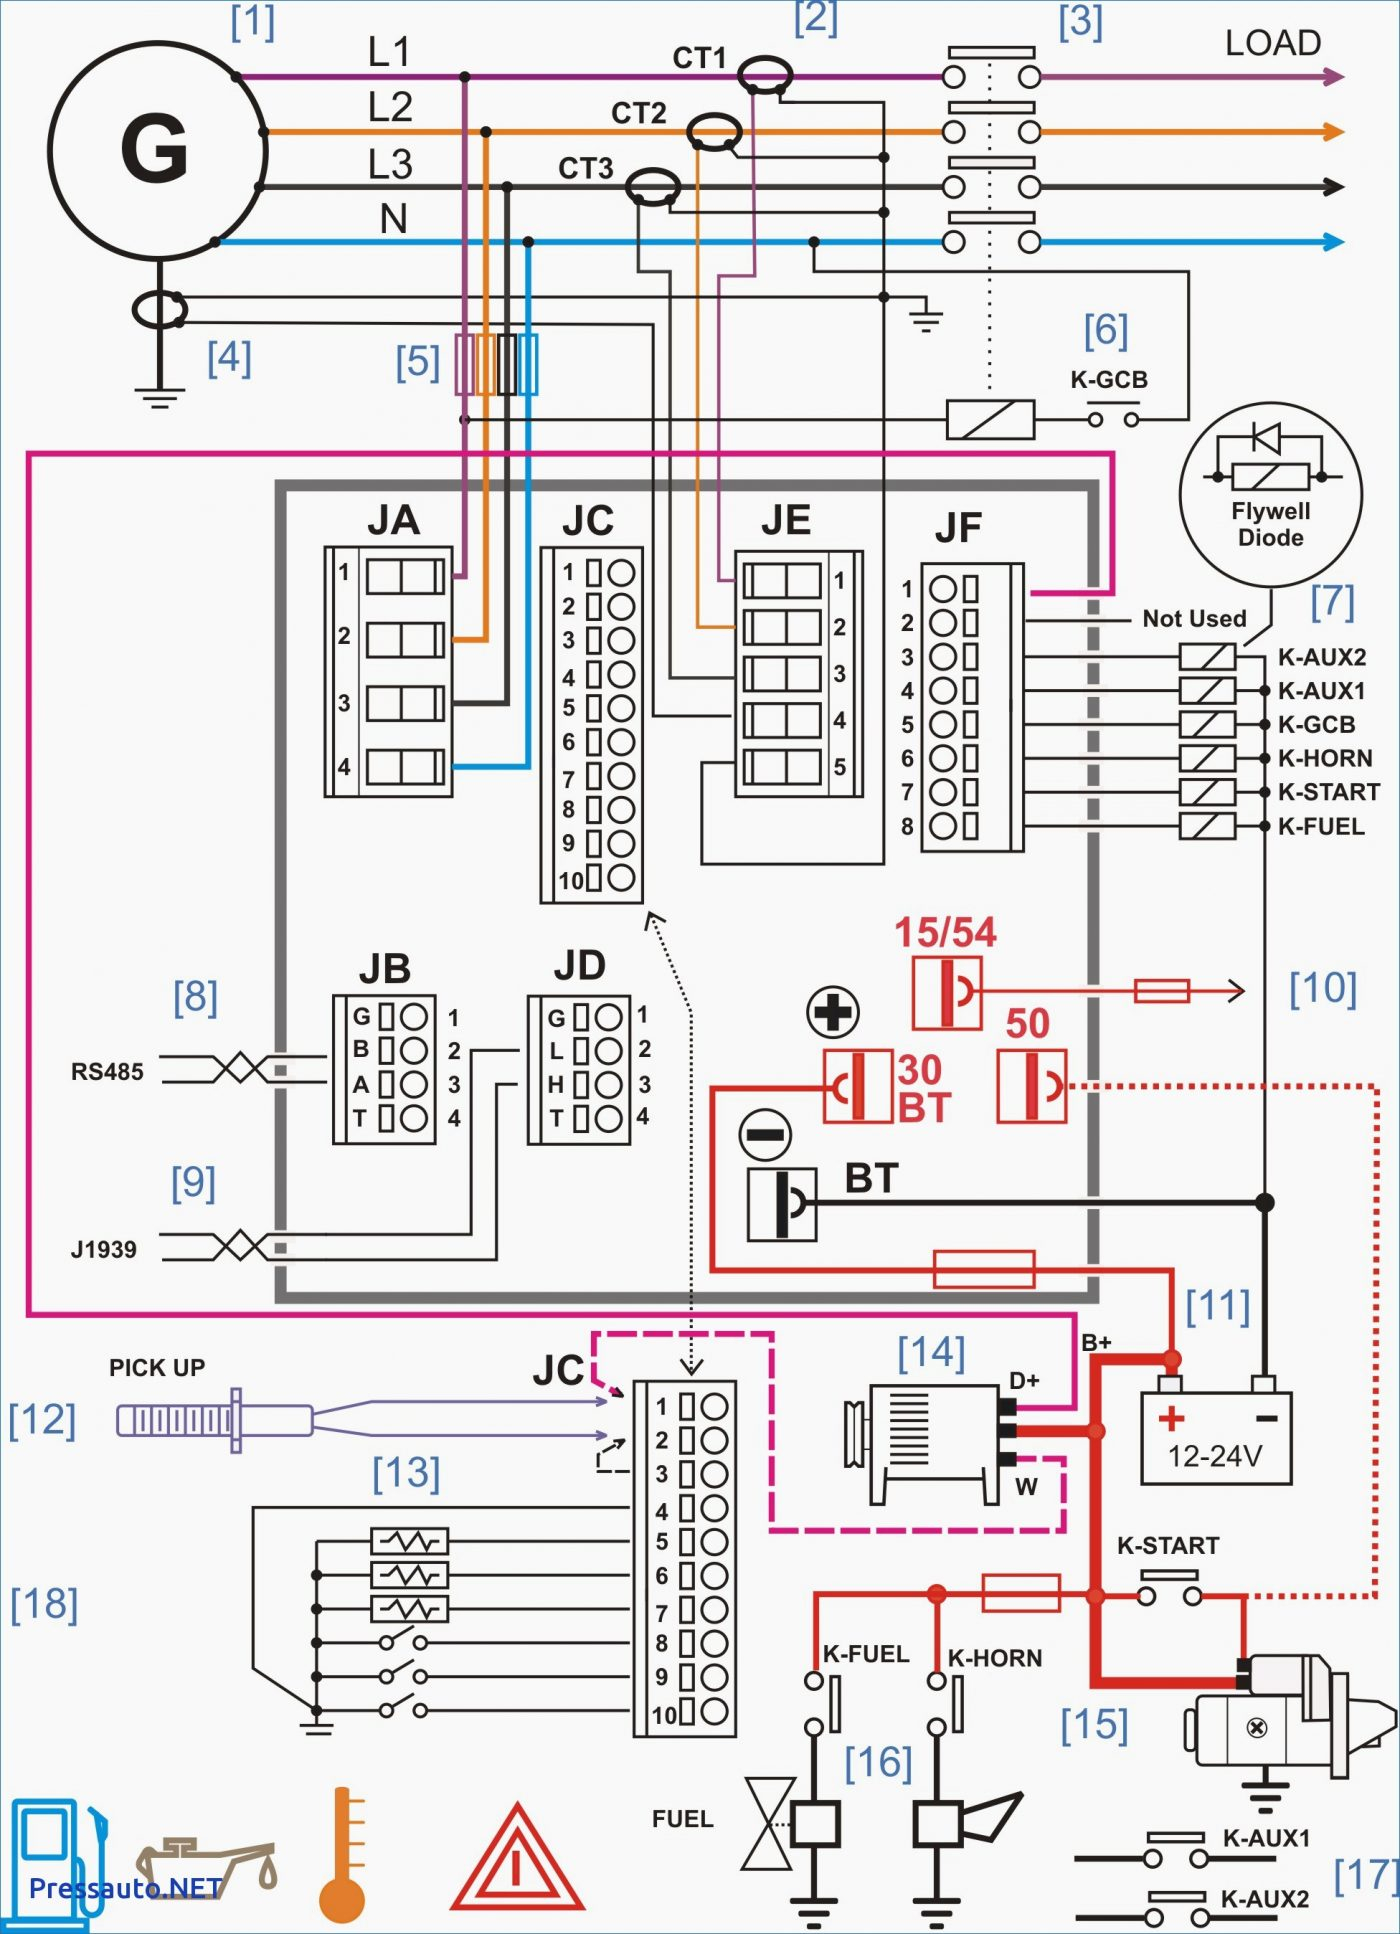 thermospa wiring diagram Download-Thermospa Wiring Diagram Luxury Sta Rite Pump Wiring Diagram Pool Ht T Submersible High Wires 3-o